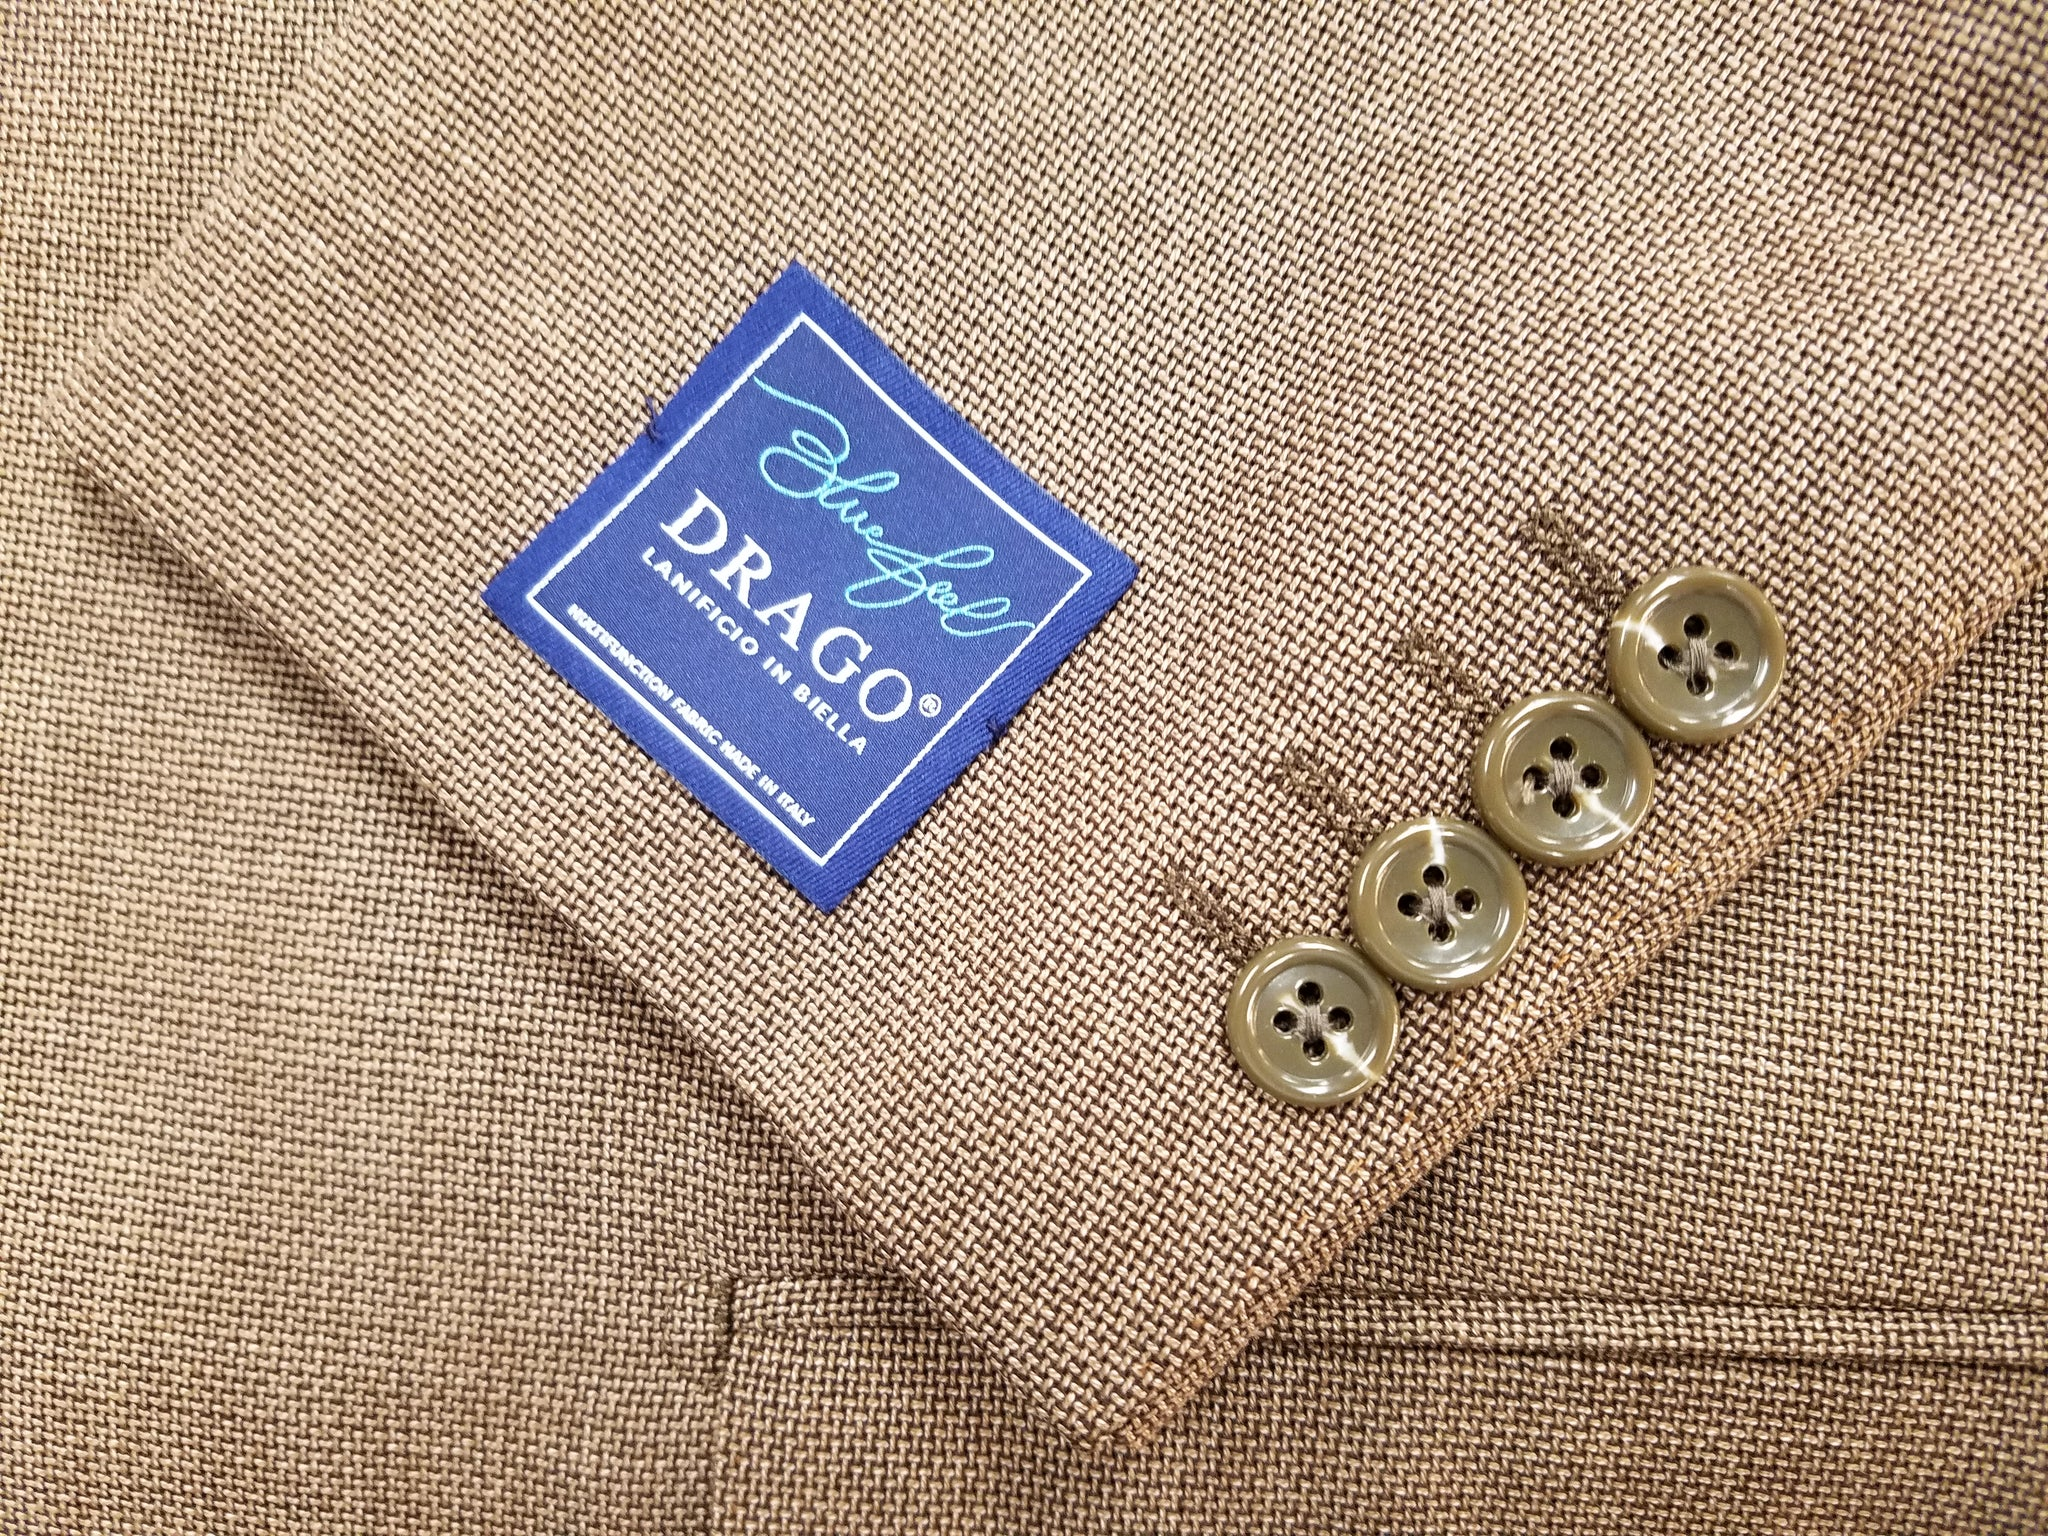 Mocha Color Sport Coat 100% Wool Fabric by Drago of Italy - Rainwater's Men's Clothing and Tuxedo Rental